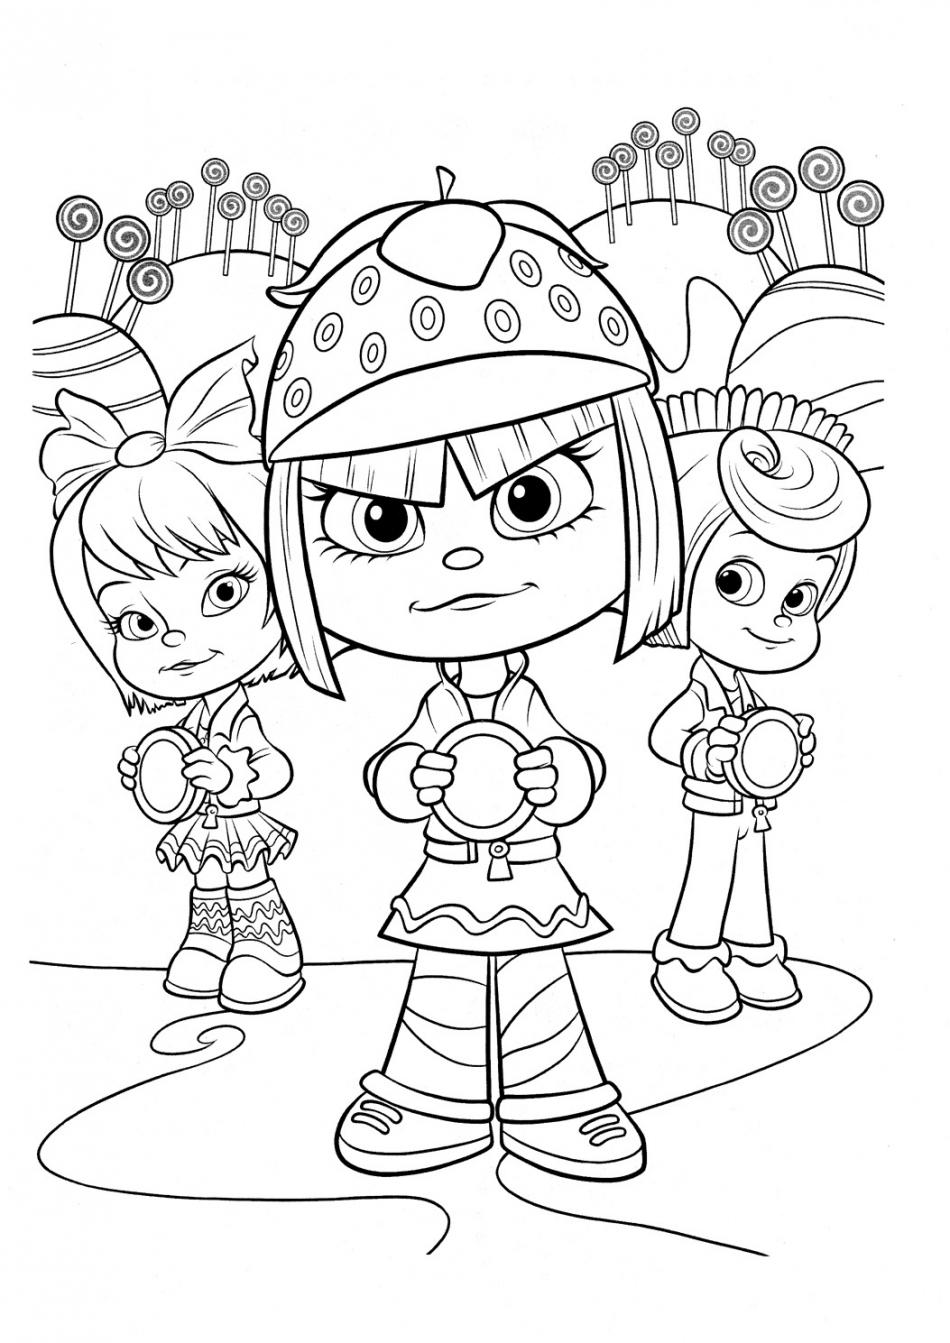 Taffyta Muttonfudge And Friends Coloring In 2020 Disney Princess Coloring Pages Disney Coloring Pages Cool Coloring Pages